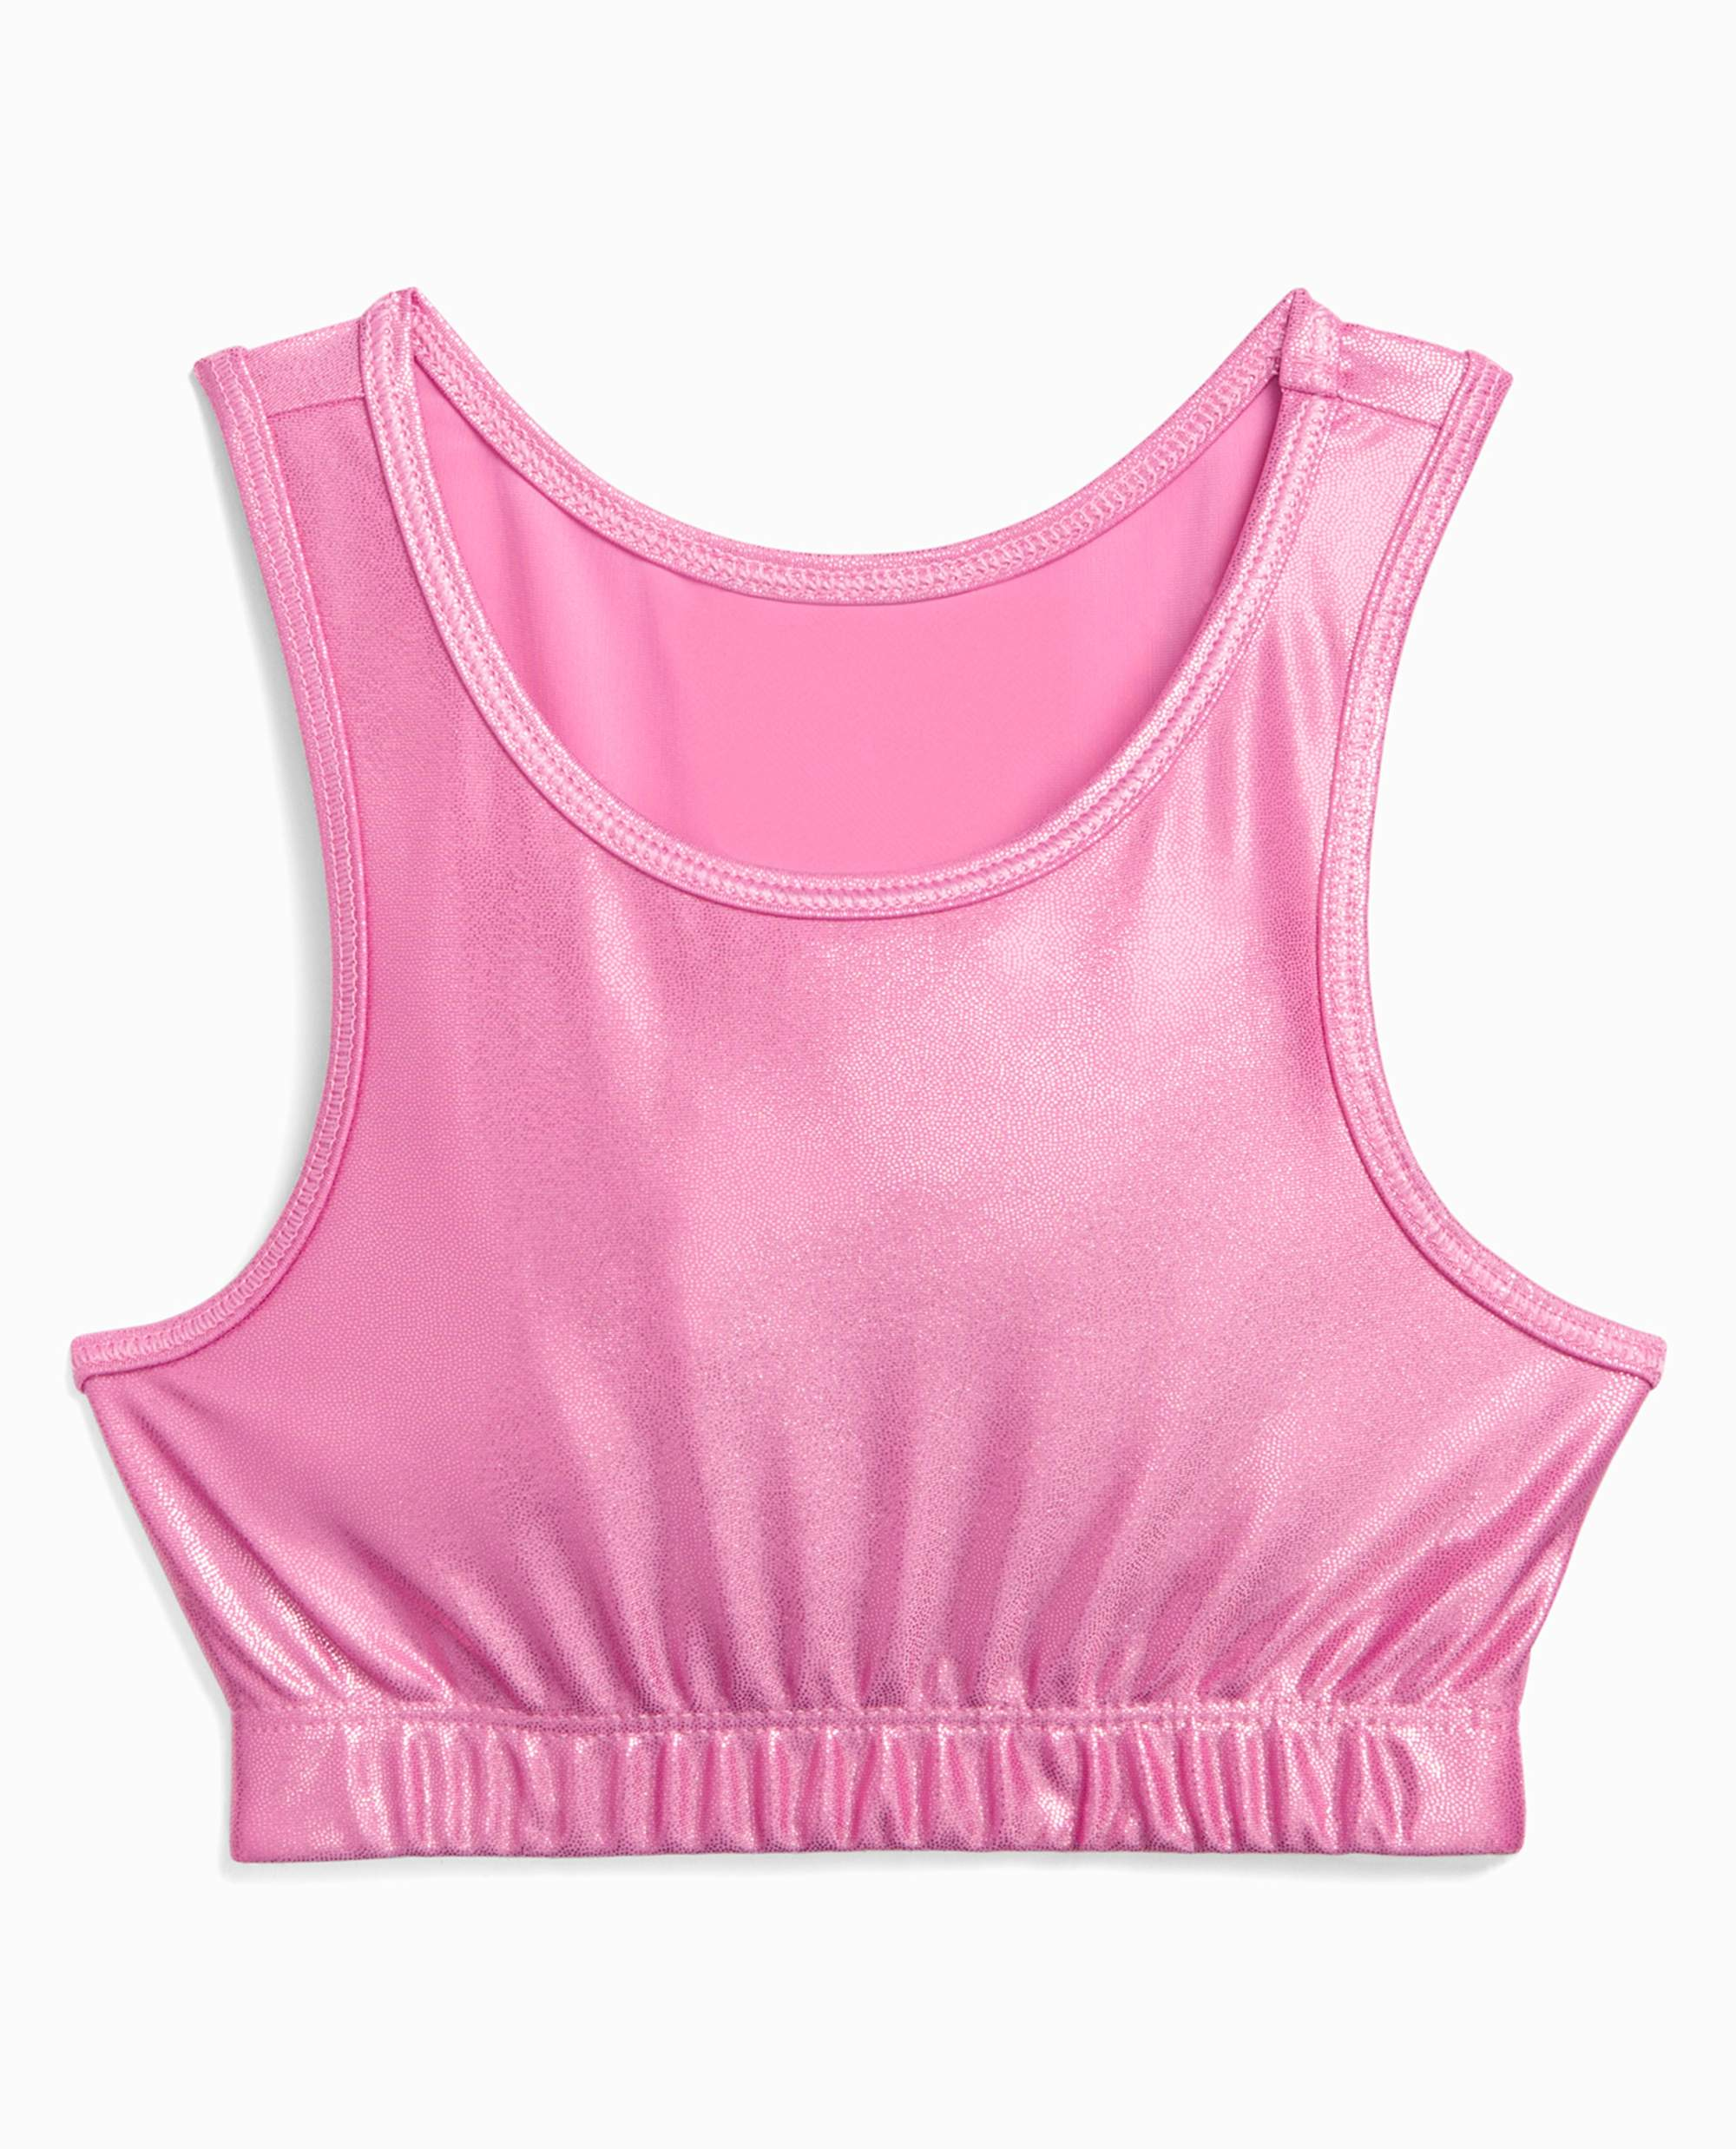 Girl's Gymnastics Basics Bra Top